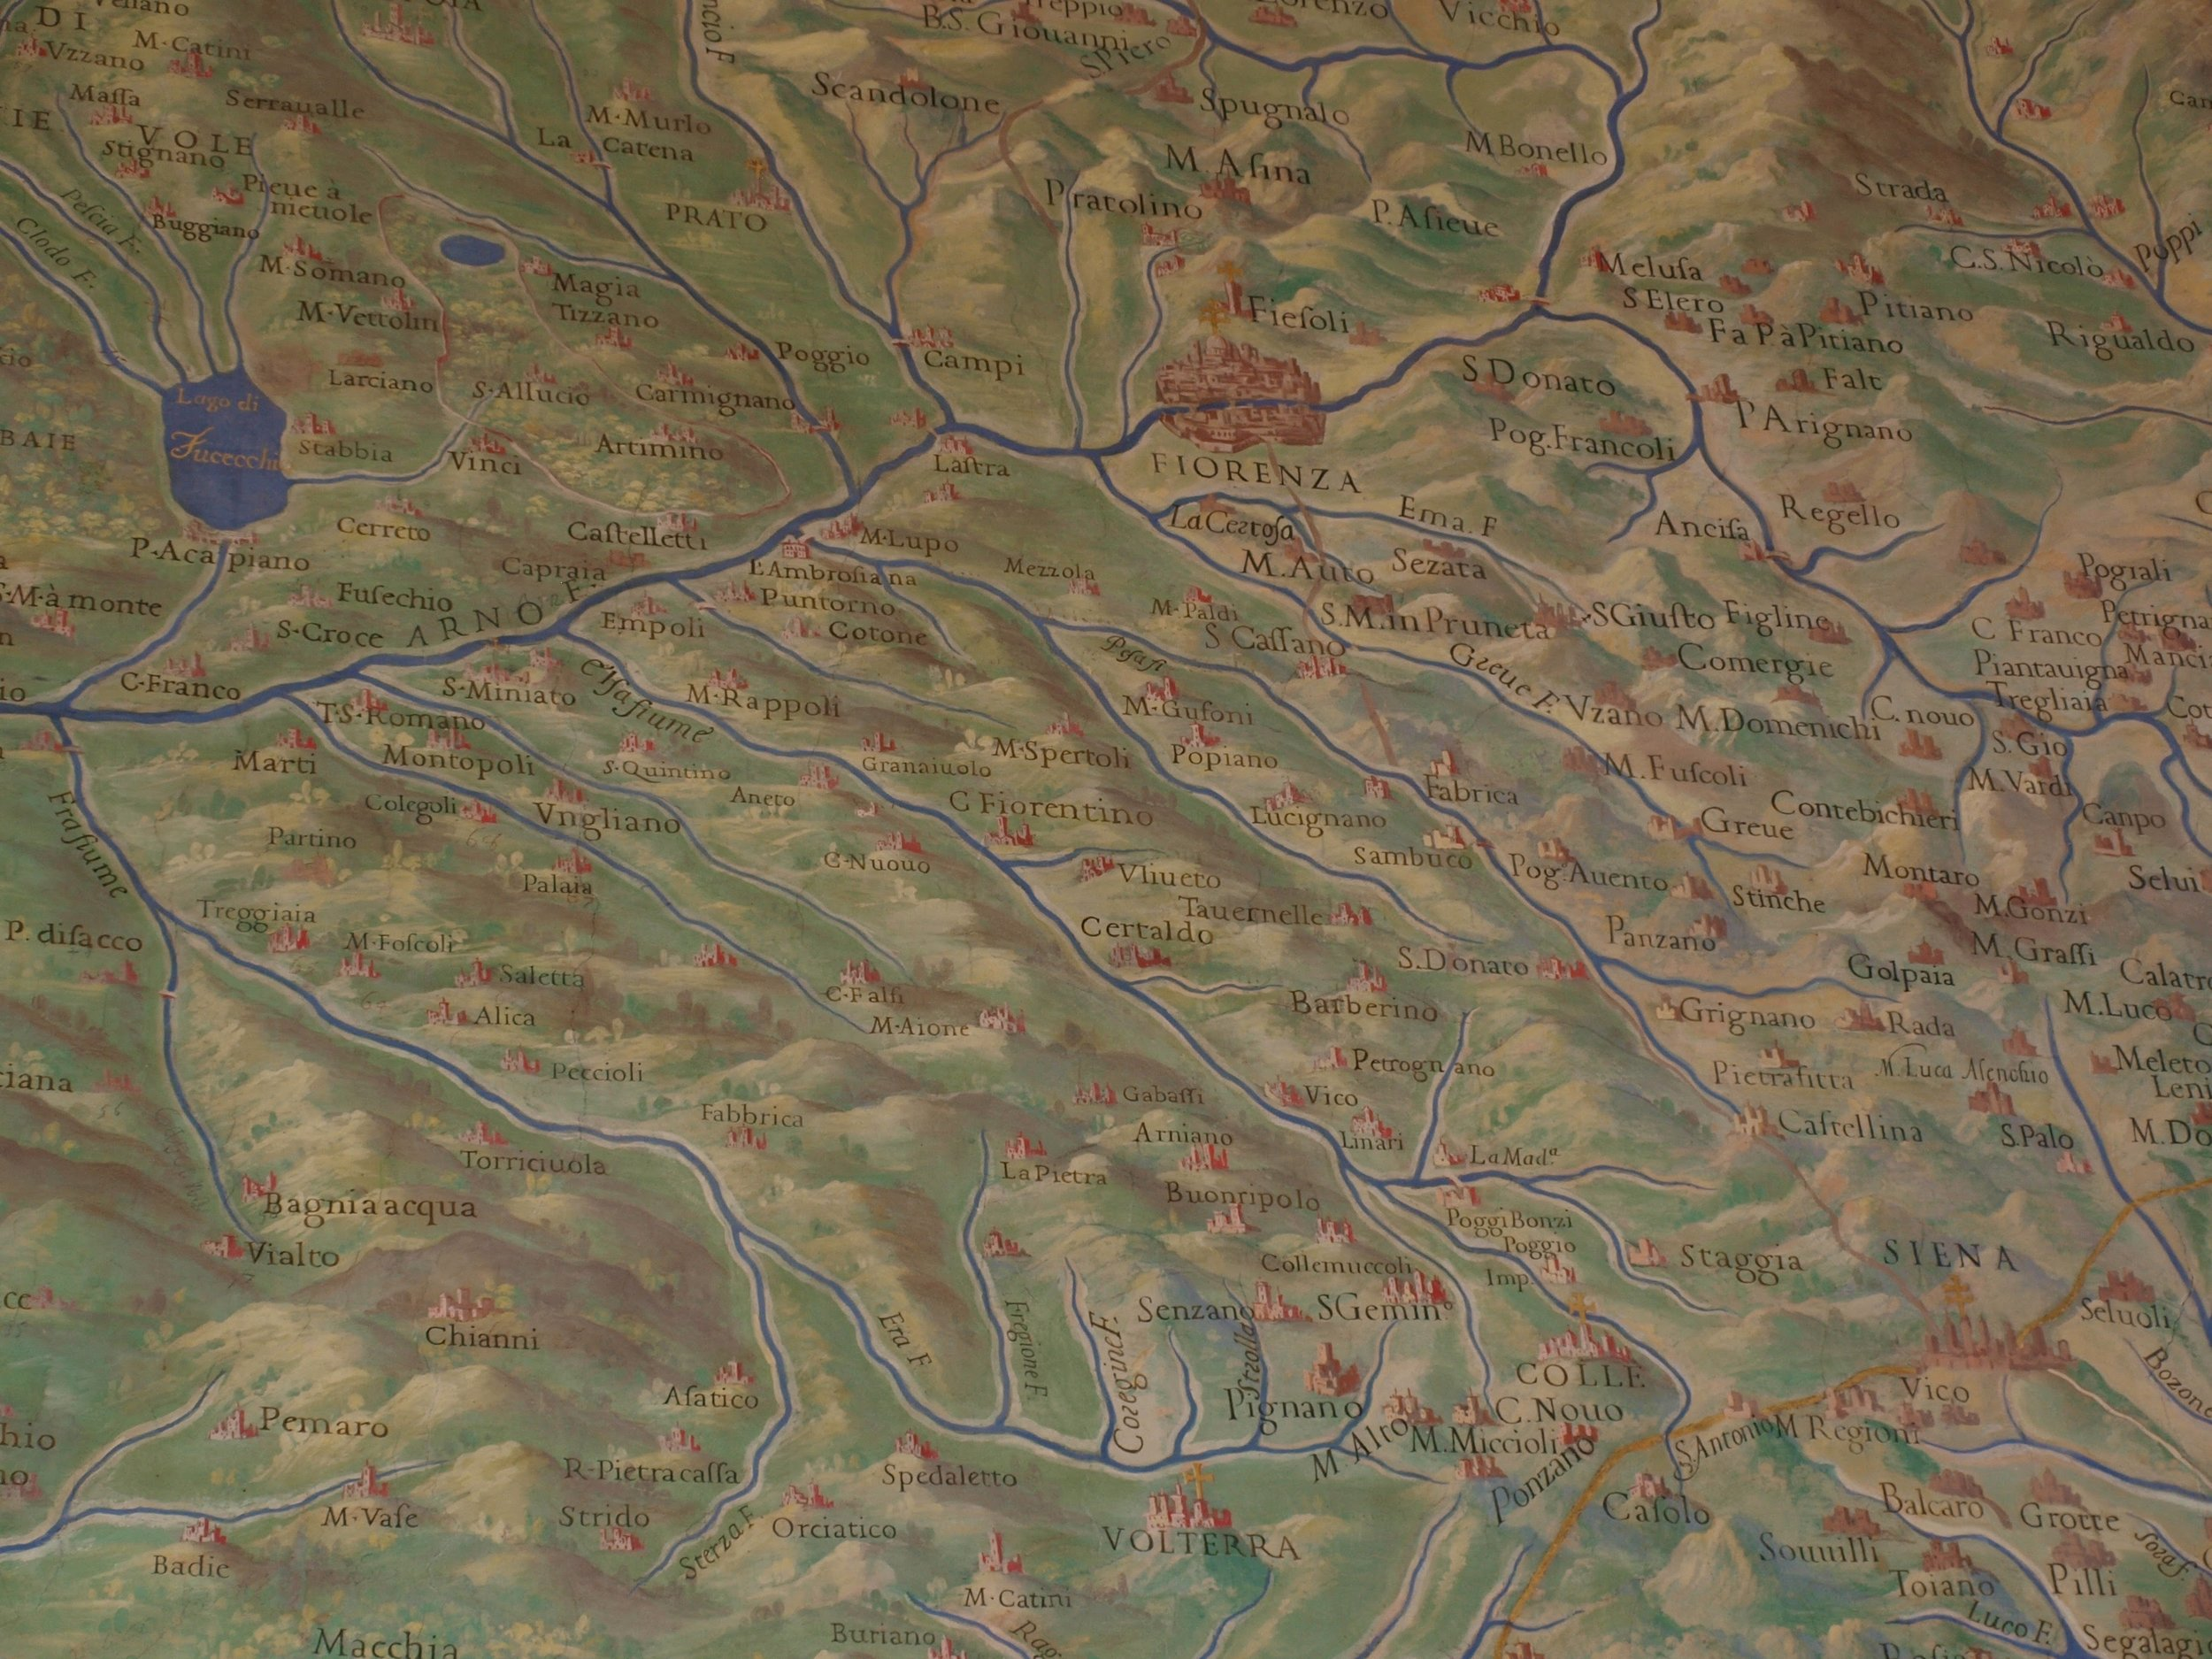 Old map of the Florence area in the museum...I spy Certaldo <3